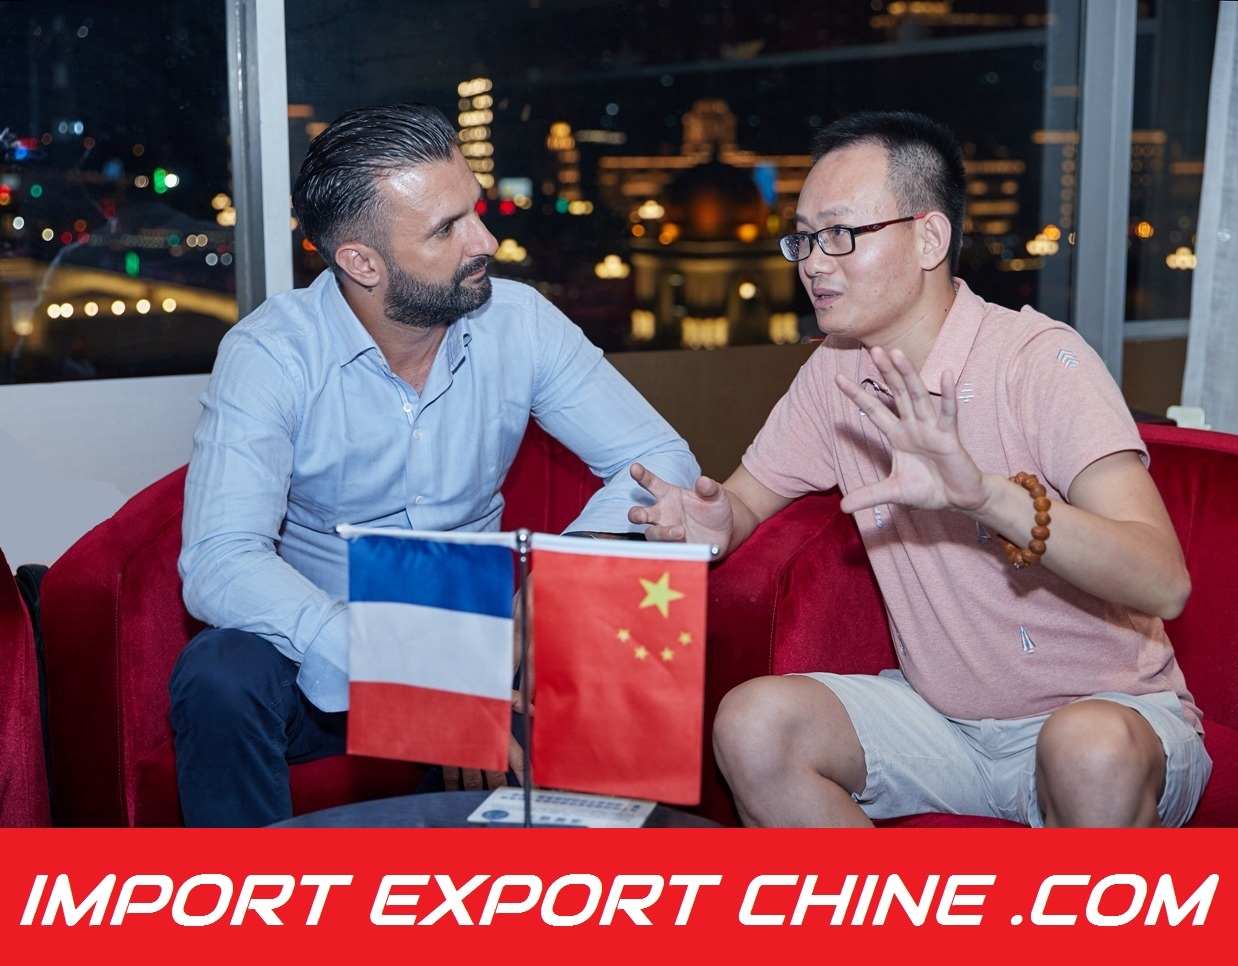 import export chine formation trading import comment faire